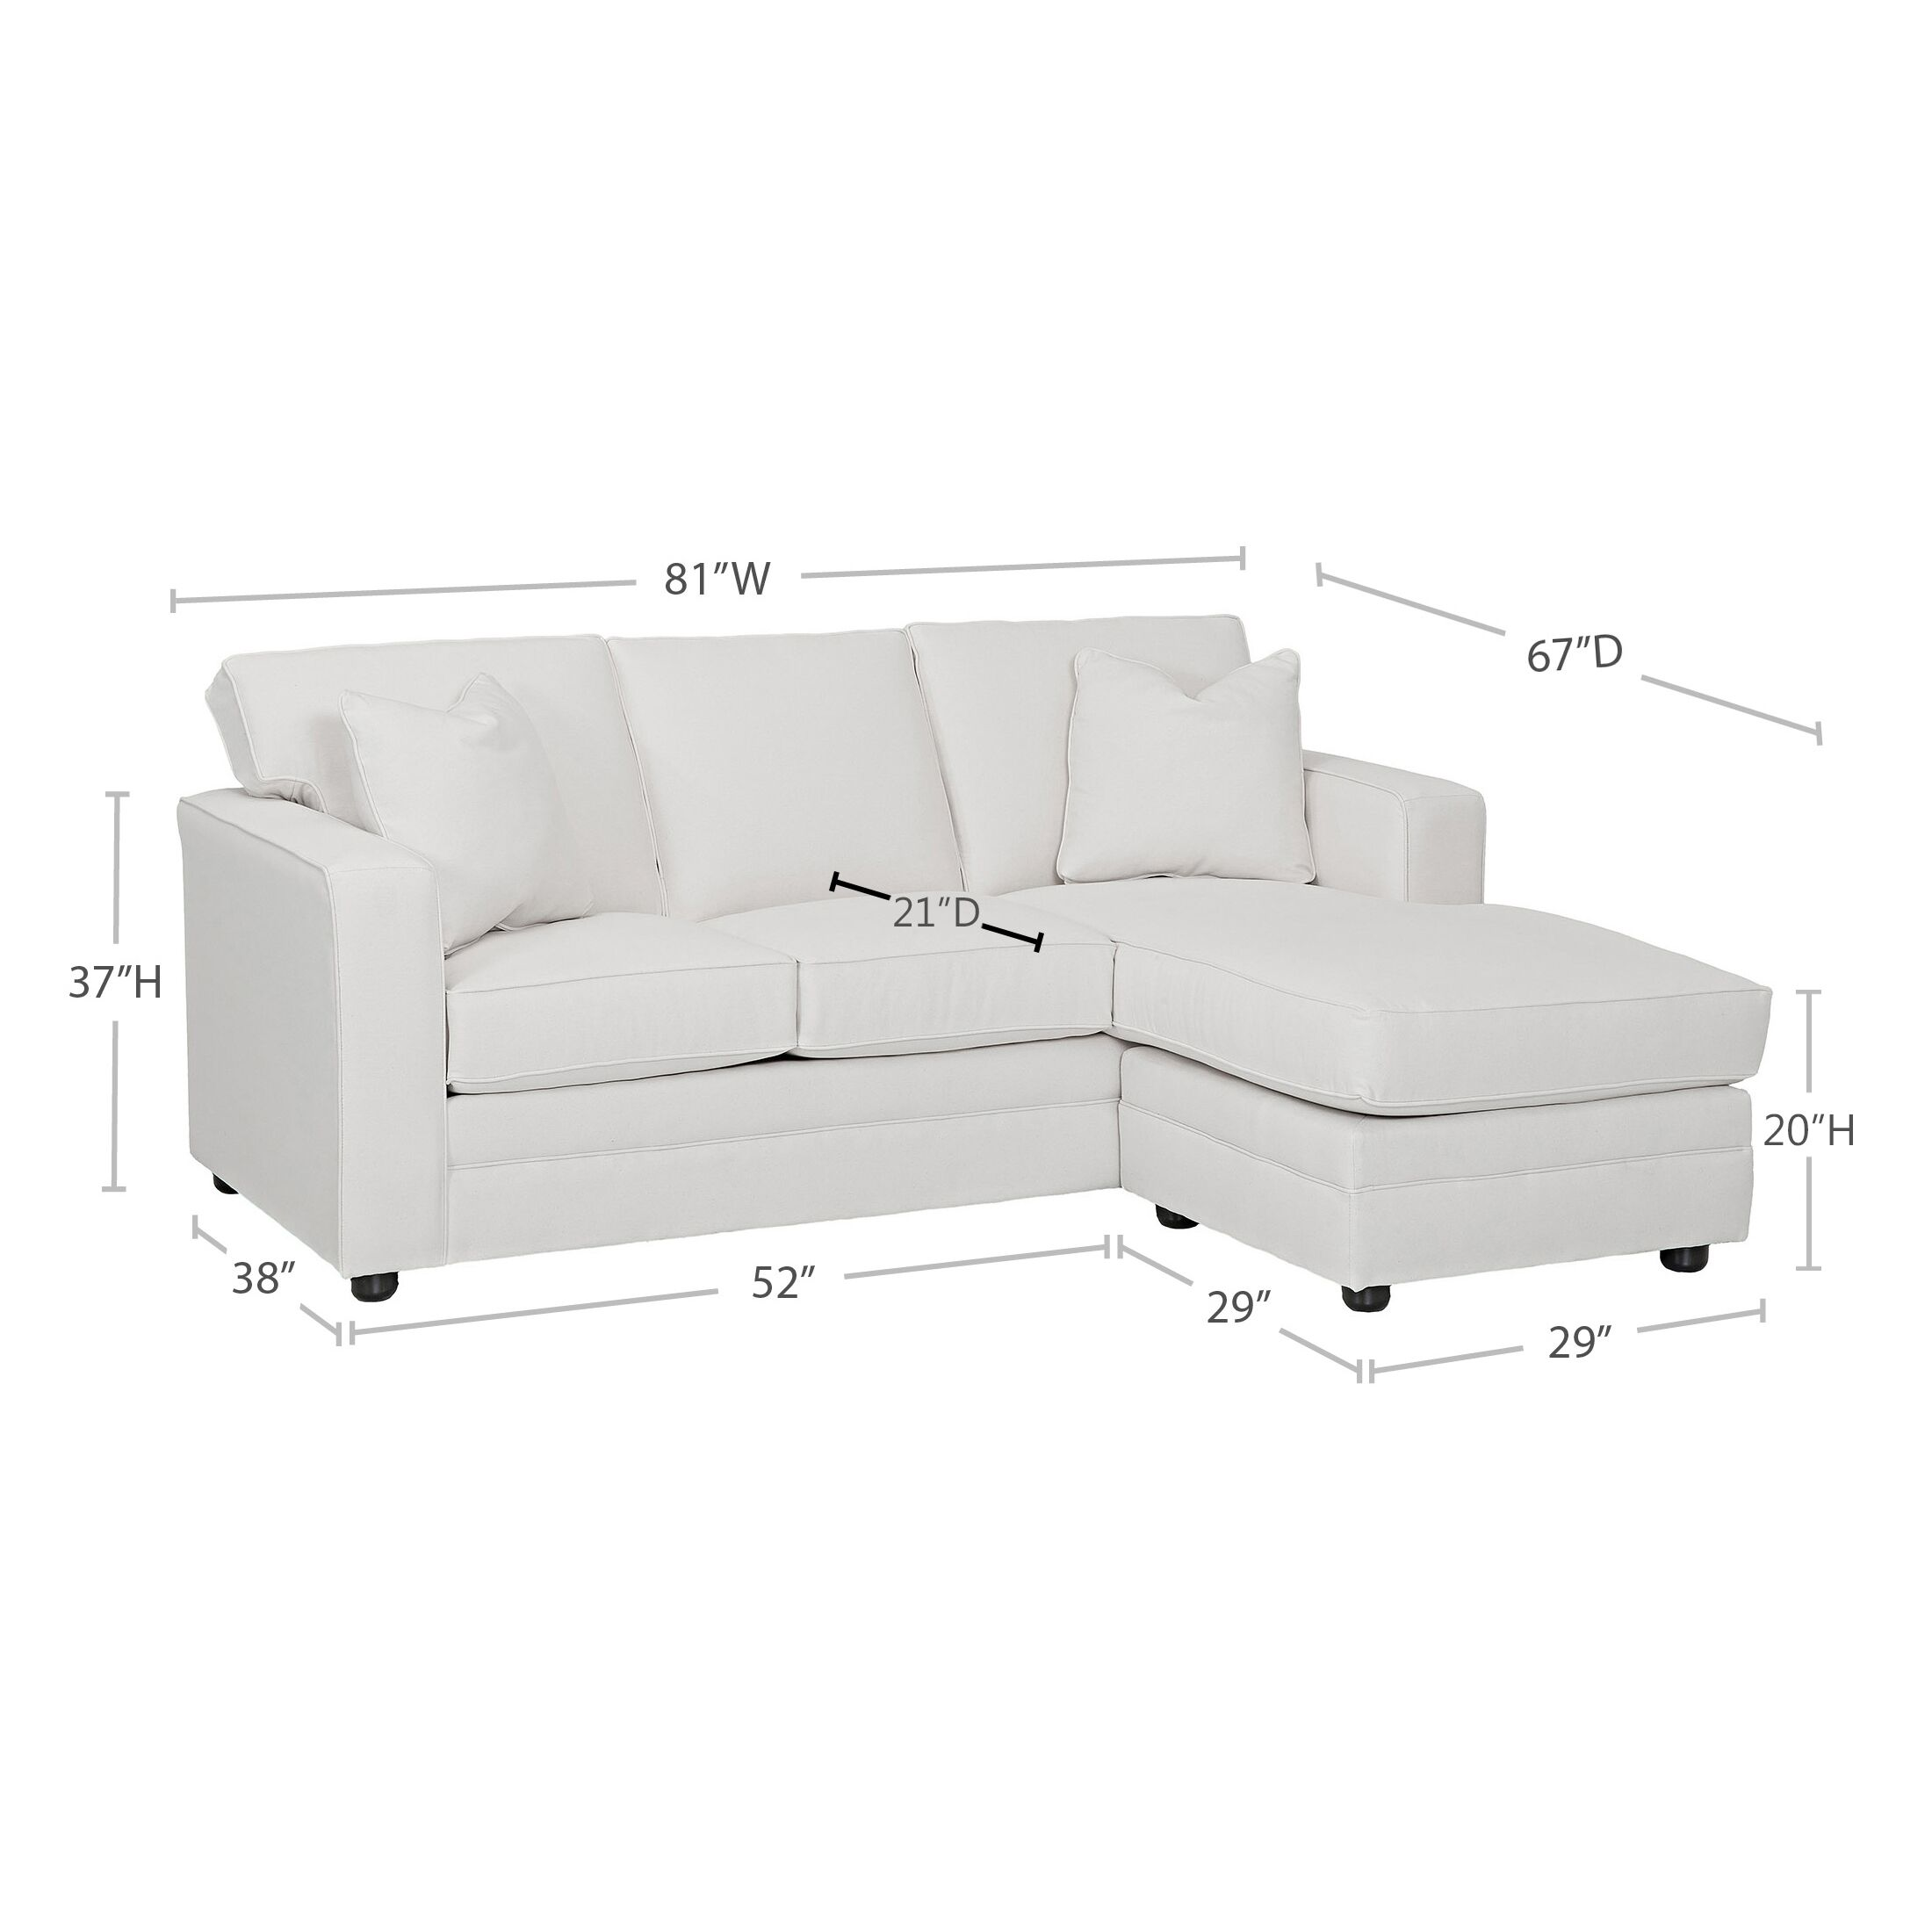 Andrew Reversible Sectional Body Fabric: Sunbrella® Canvas Spa, Pillow Fabric: Lucas Hemp, Piping Fabric: Spinnsol Optic White